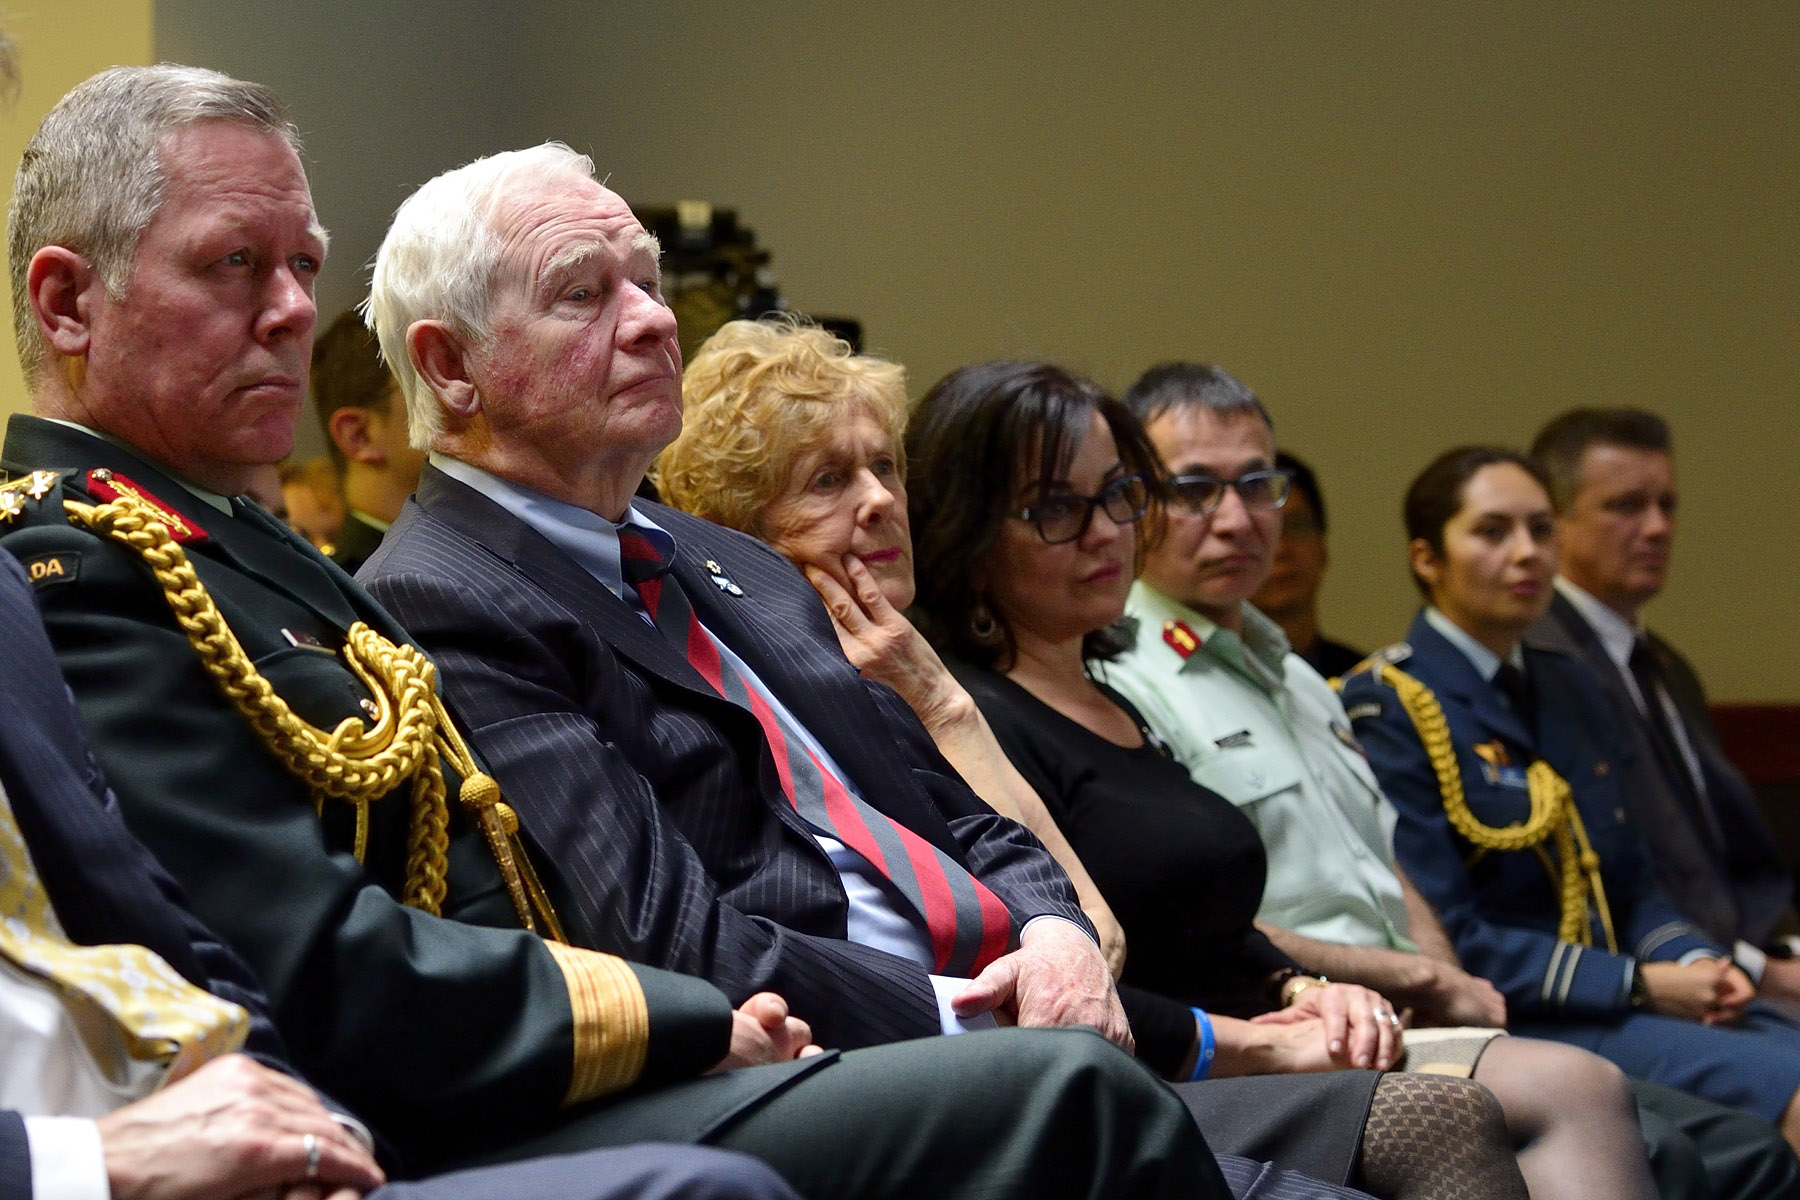 On Bell Let's Talk day, Their Excellencies attended a panel discussion hosted by the Canadian Armed Forces and the Department of National Defence.